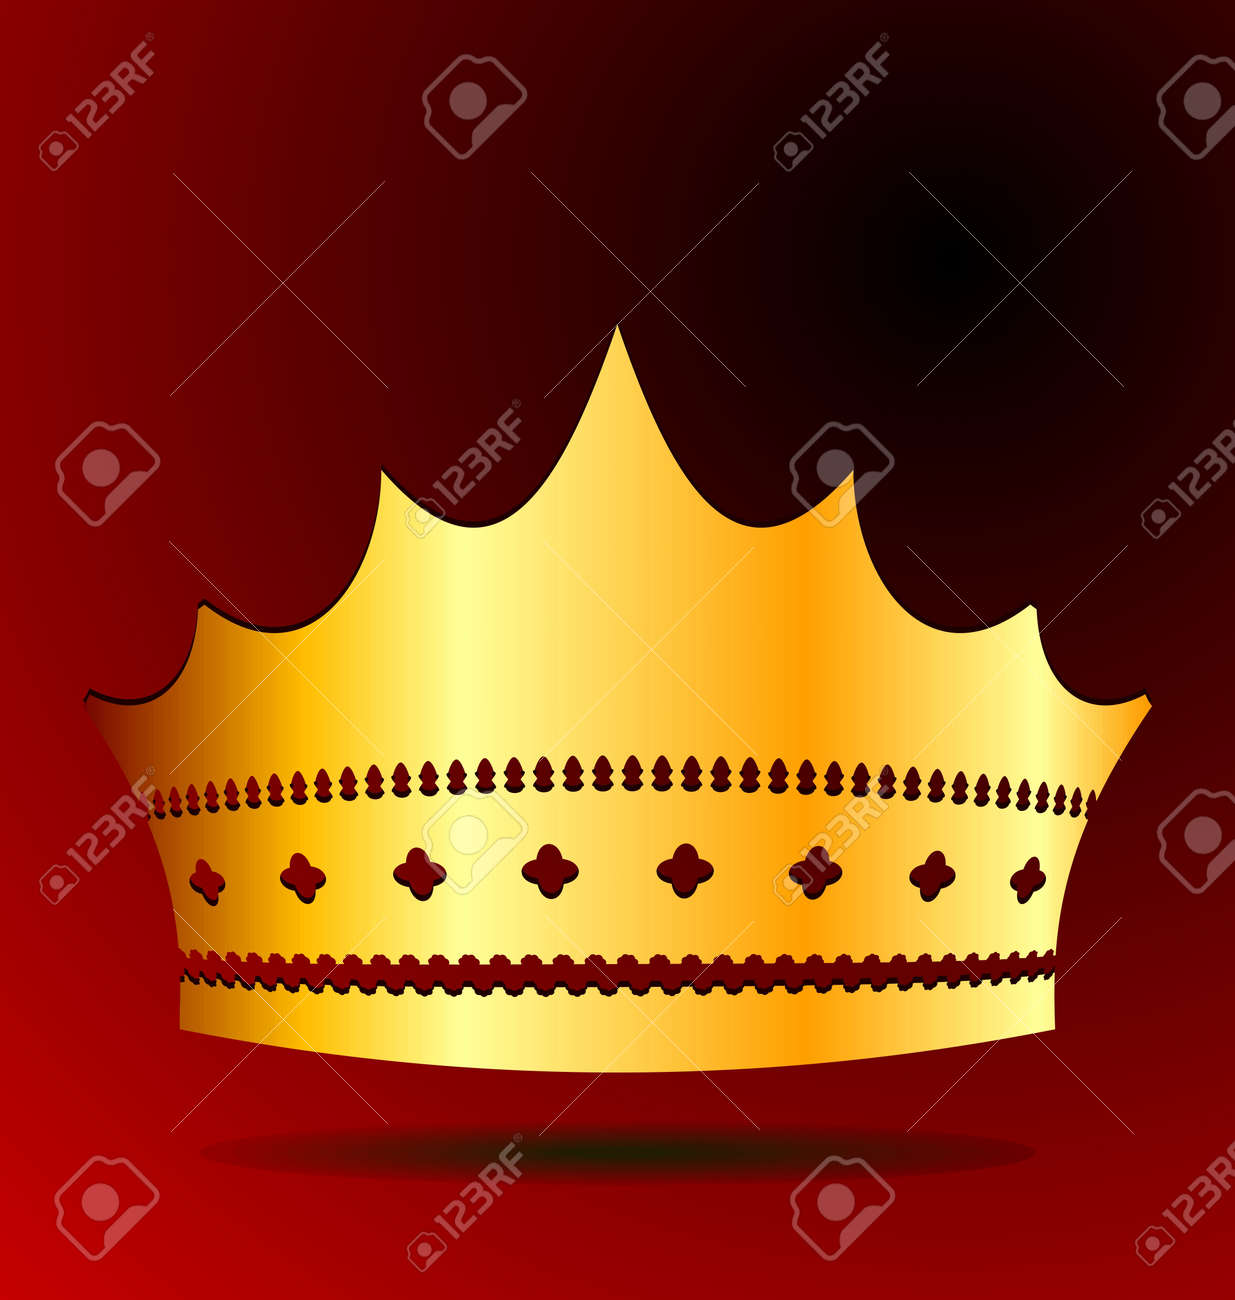 Illustration the gold royal crown for jewel design Stock Vector - 8290057